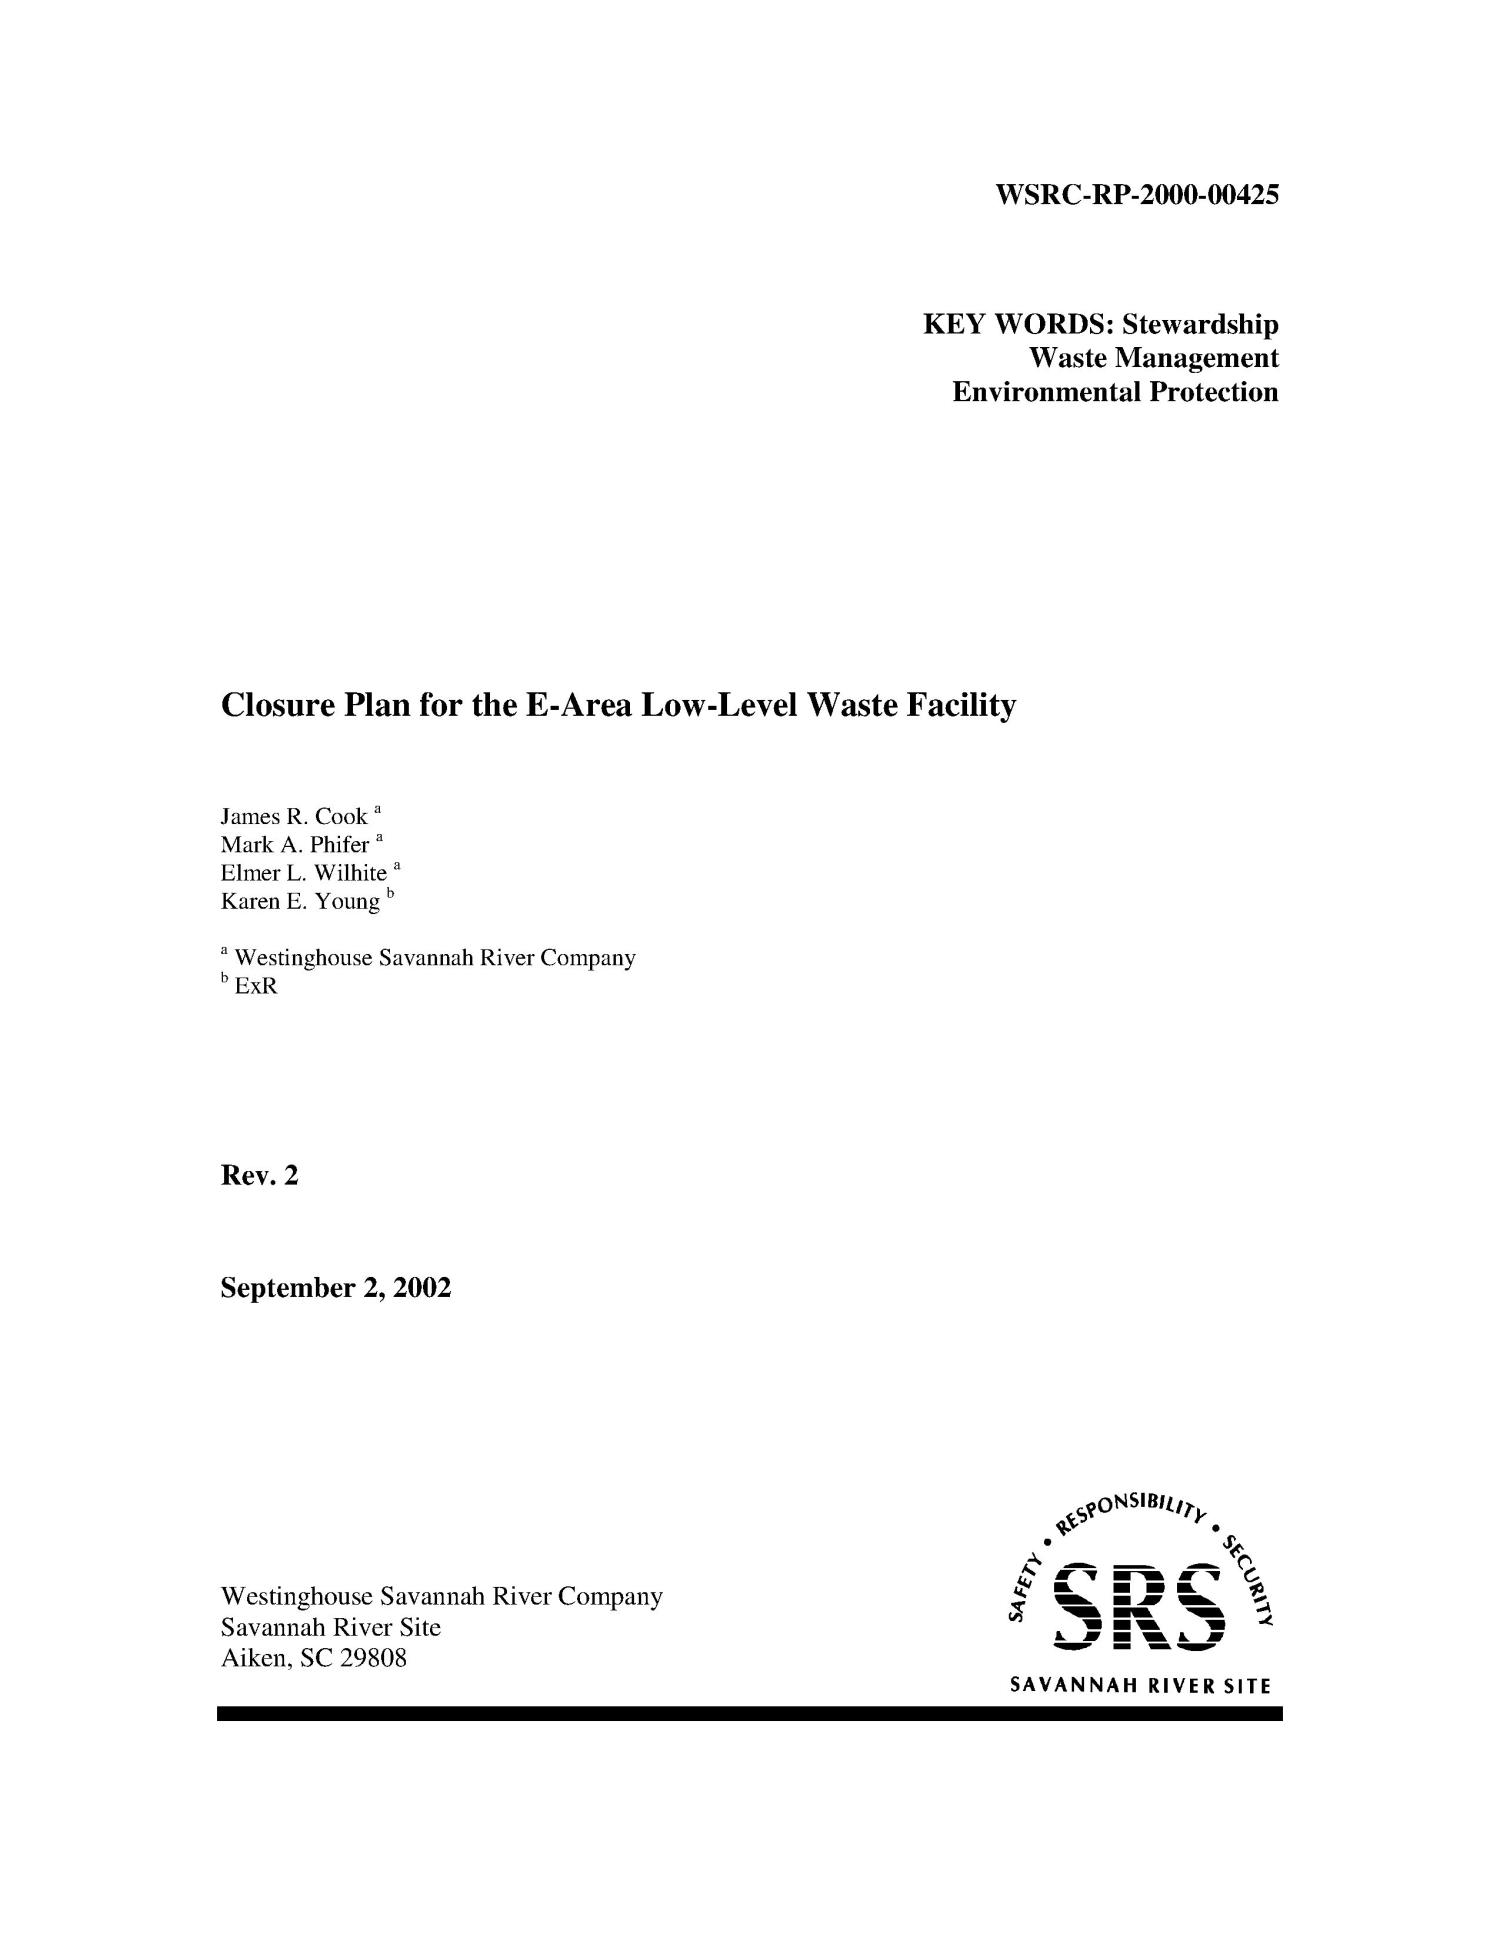 Closure Plan for the E-Area Low-Level Waste Facility                                                                                                      [Sequence #]: 1 of 84